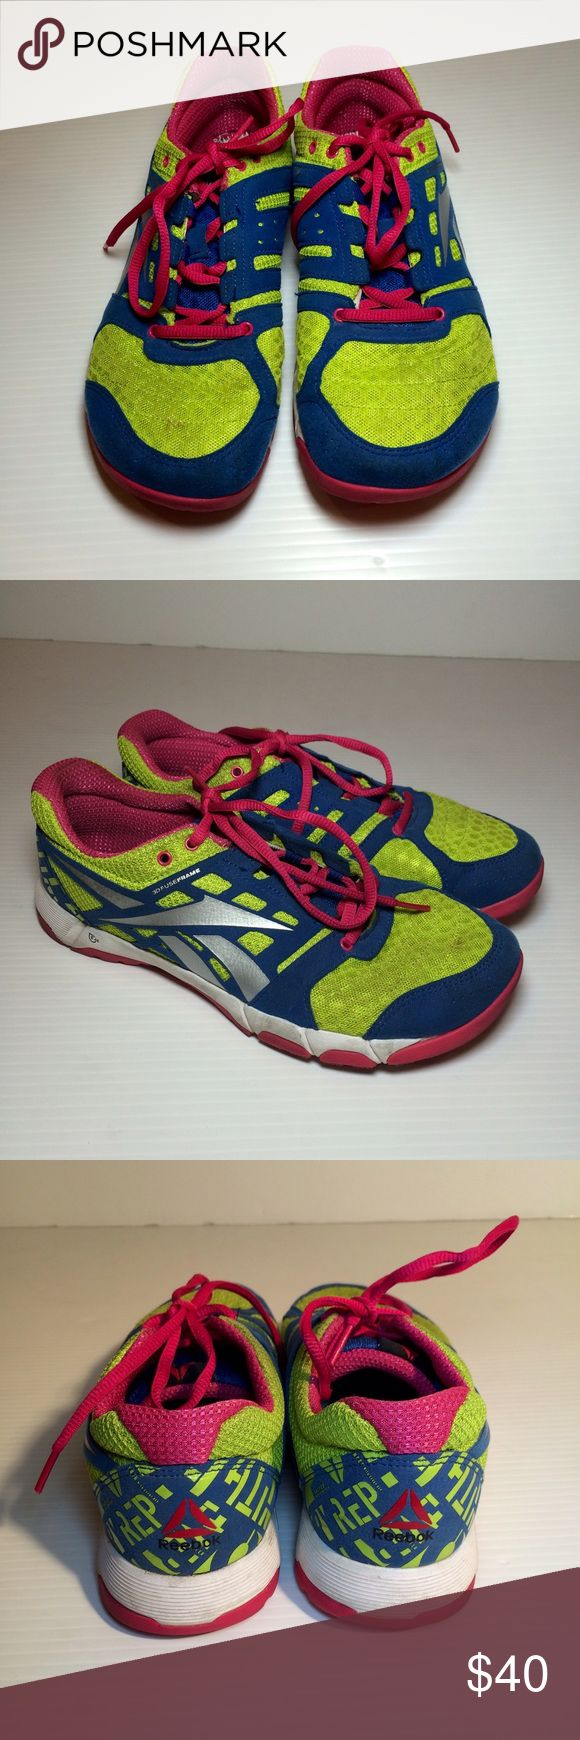 Reebok Knit Neon Running Shoes Great condition!  Lime, bright blue and bright pink.  Size 8. No trades. Reebok Shoes Sneakers